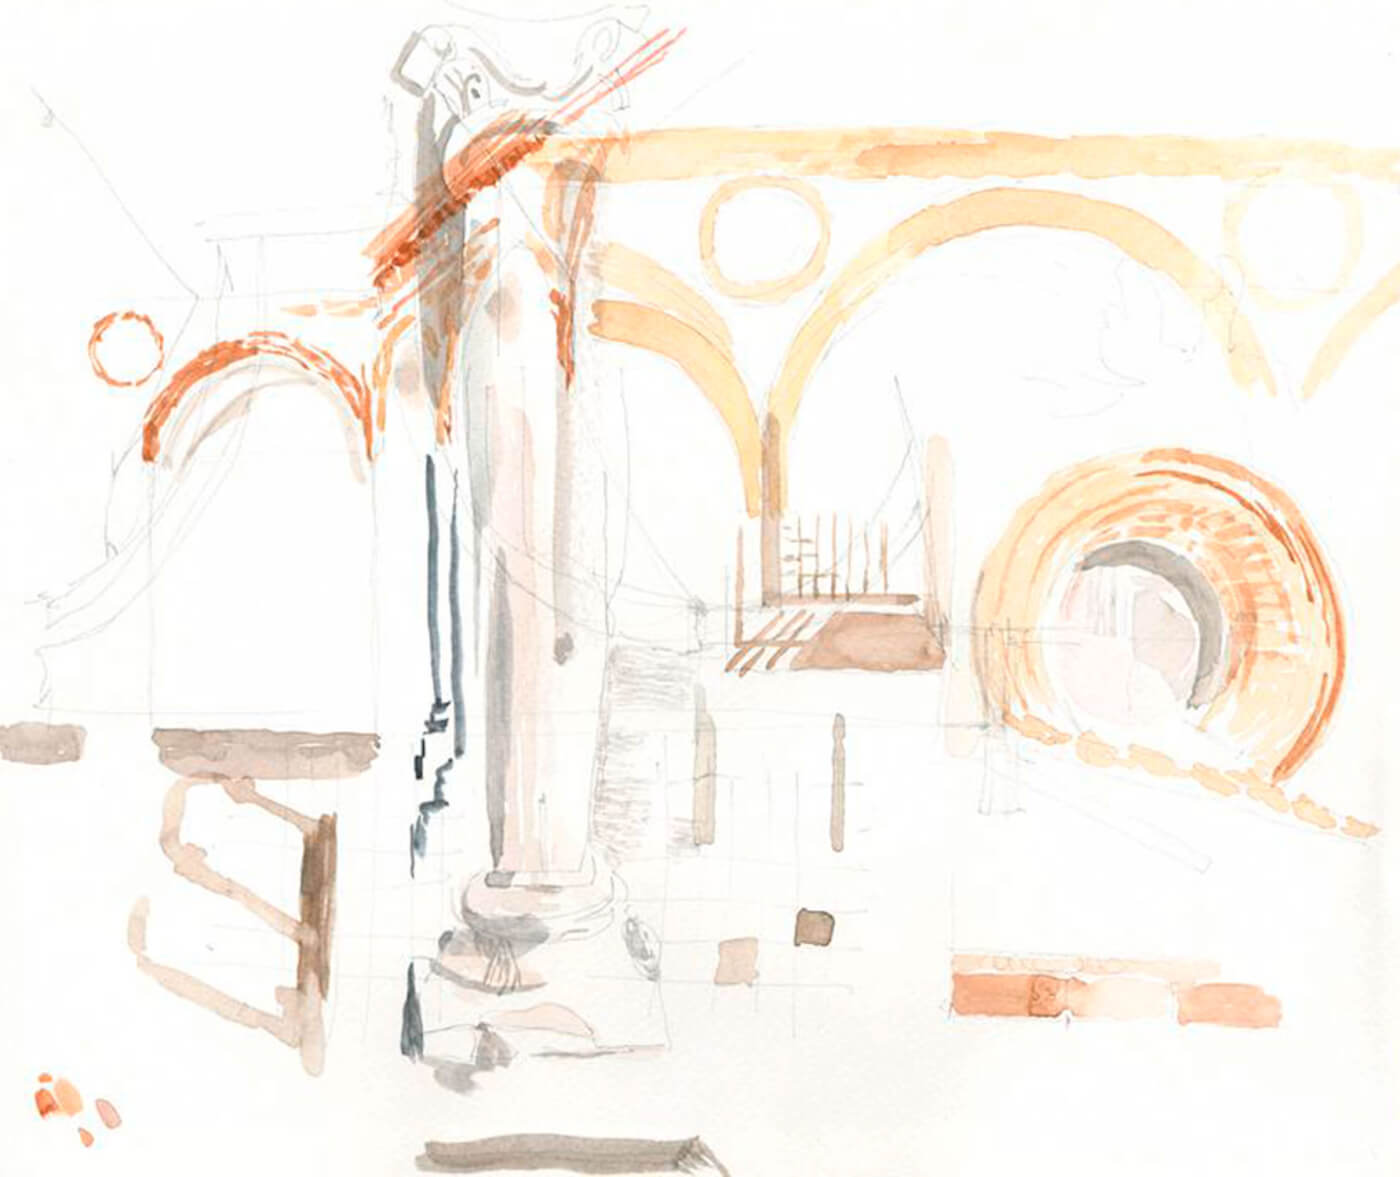 mailand, workshop, santa amraia delle grazie, zeichnung, aquarell, drawing, art